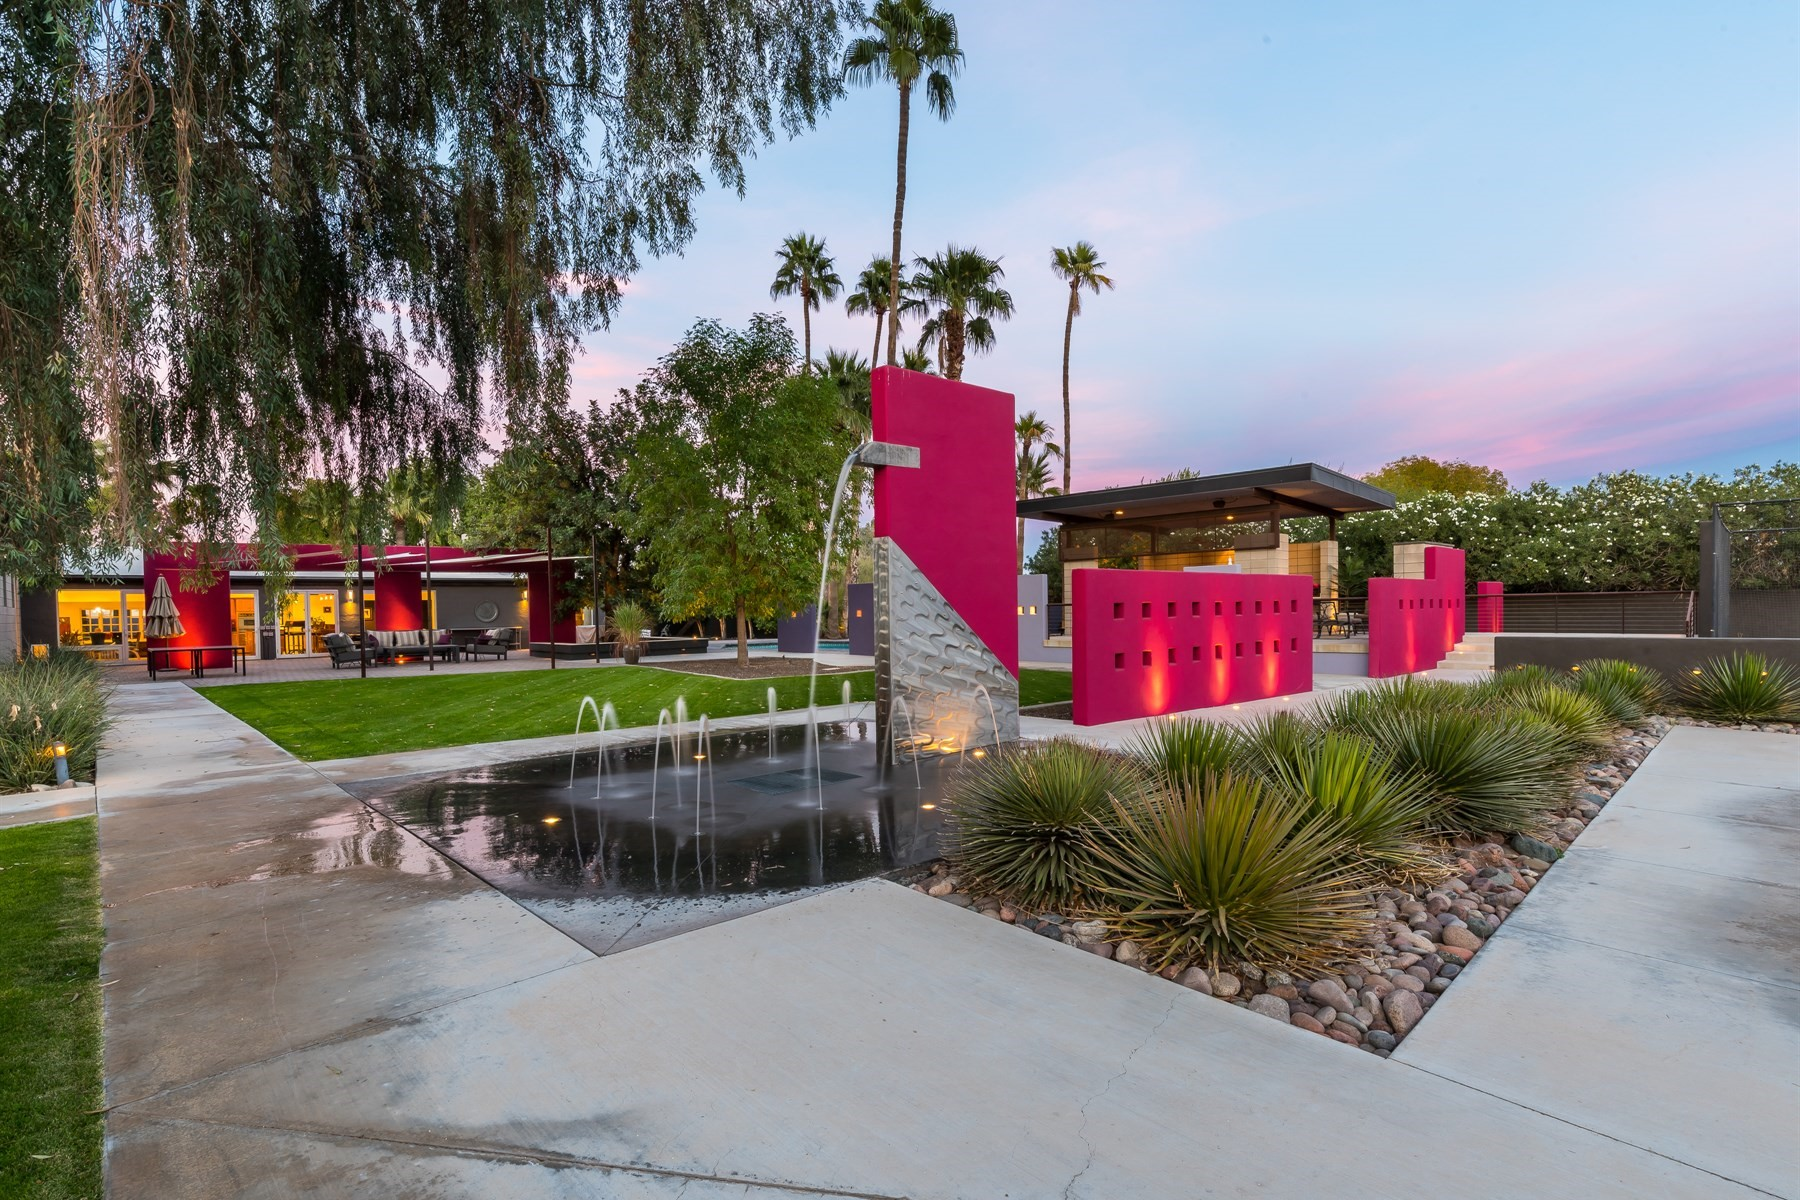 Single Family Home for Sale at Resort style living in Mockingbird Meadows 6833 E Belmont Circle, Paradise Valley, Arizona, 85253 United States